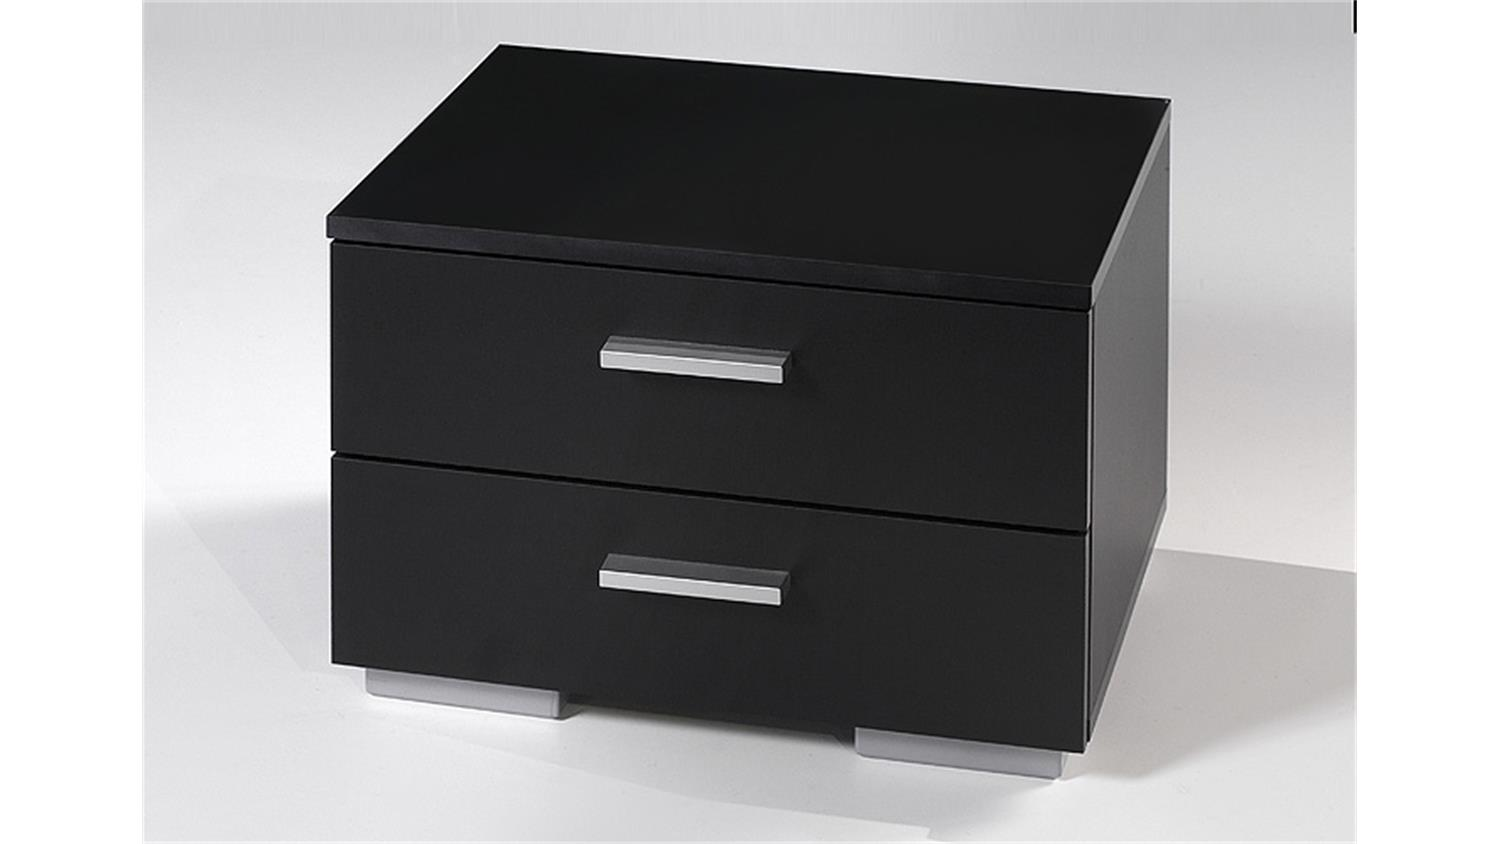 nachtkommode two kommode nachtkonsole in schwarz dekor. Black Bedroom Furniture Sets. Home Design Ideas